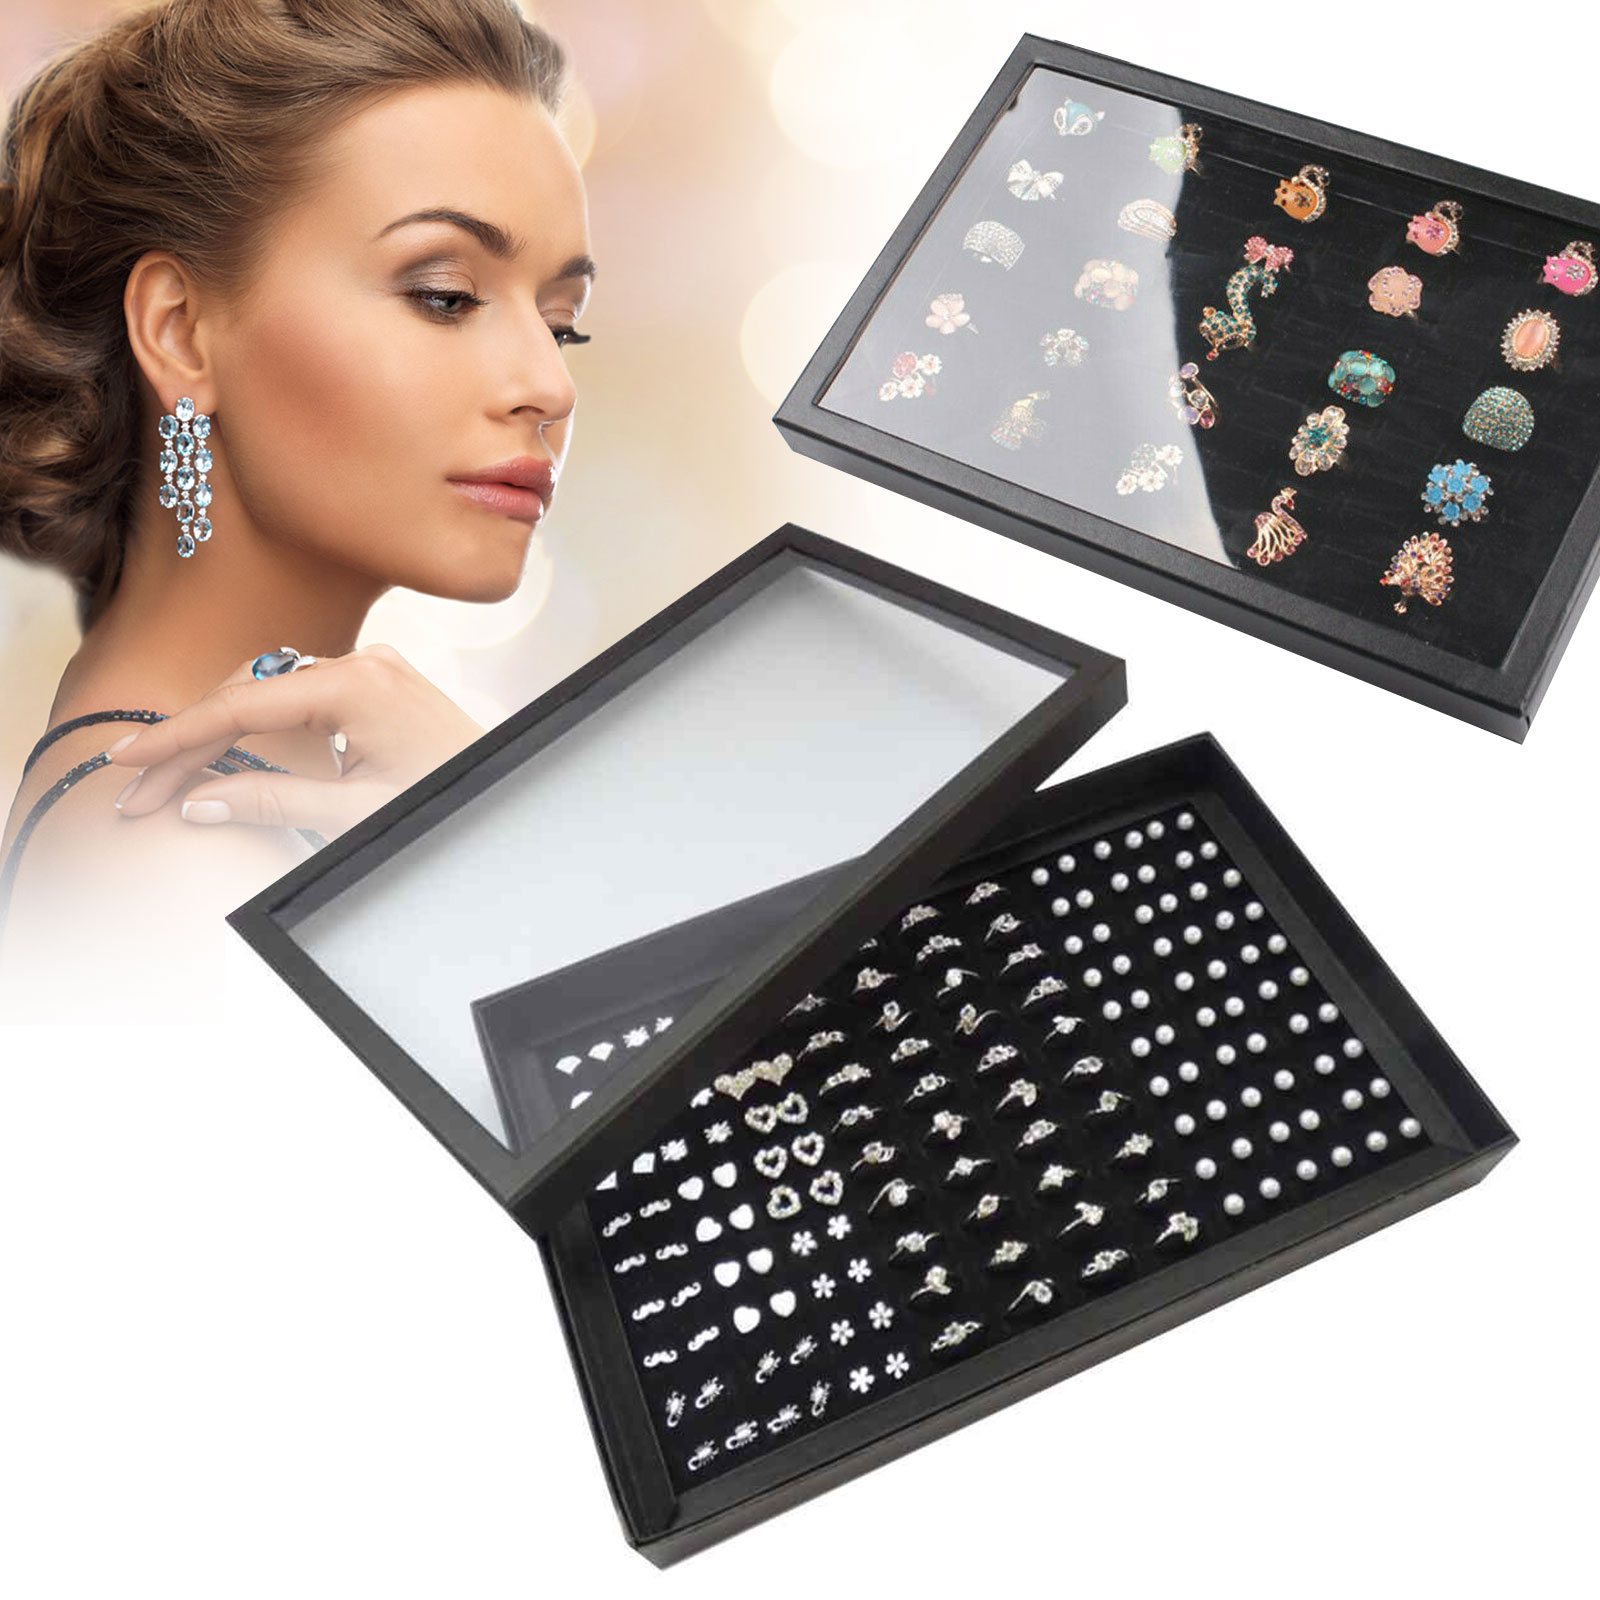 Fashion-Jewelry-Organizer-Box-Holder-Tray-Case-For-Ring-Earring-Storage-Display